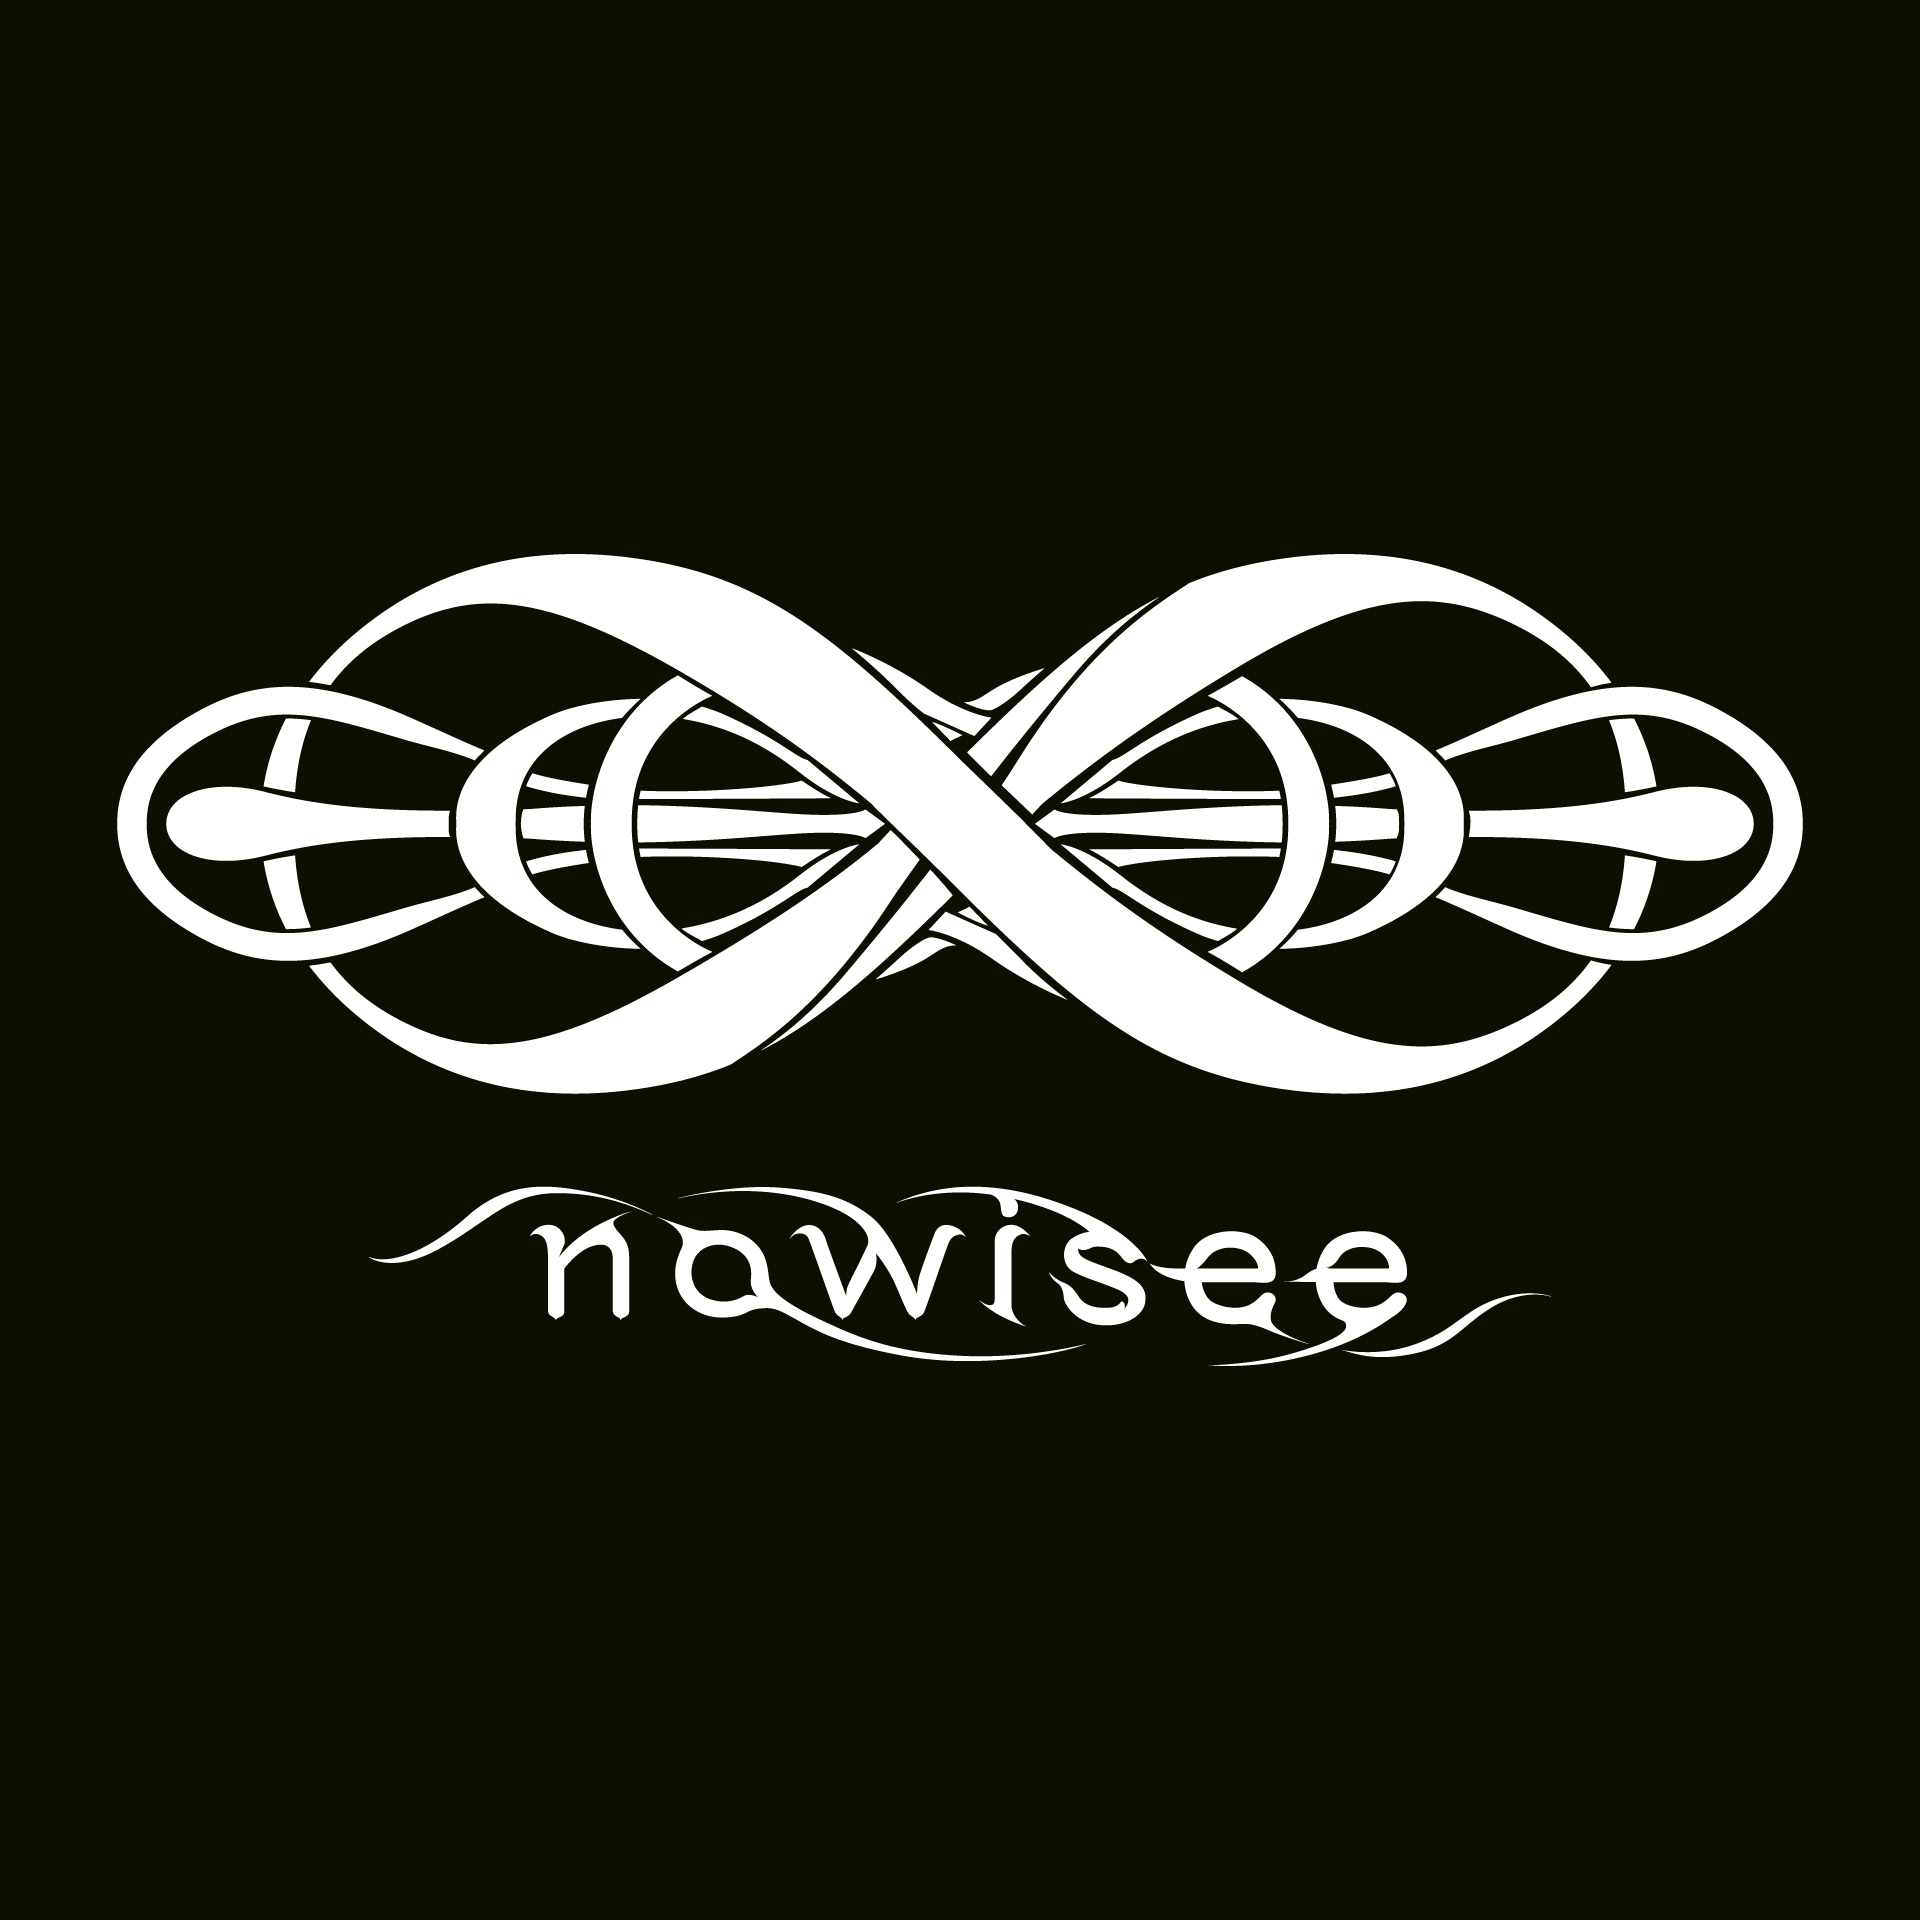 nowisee_ロゴ